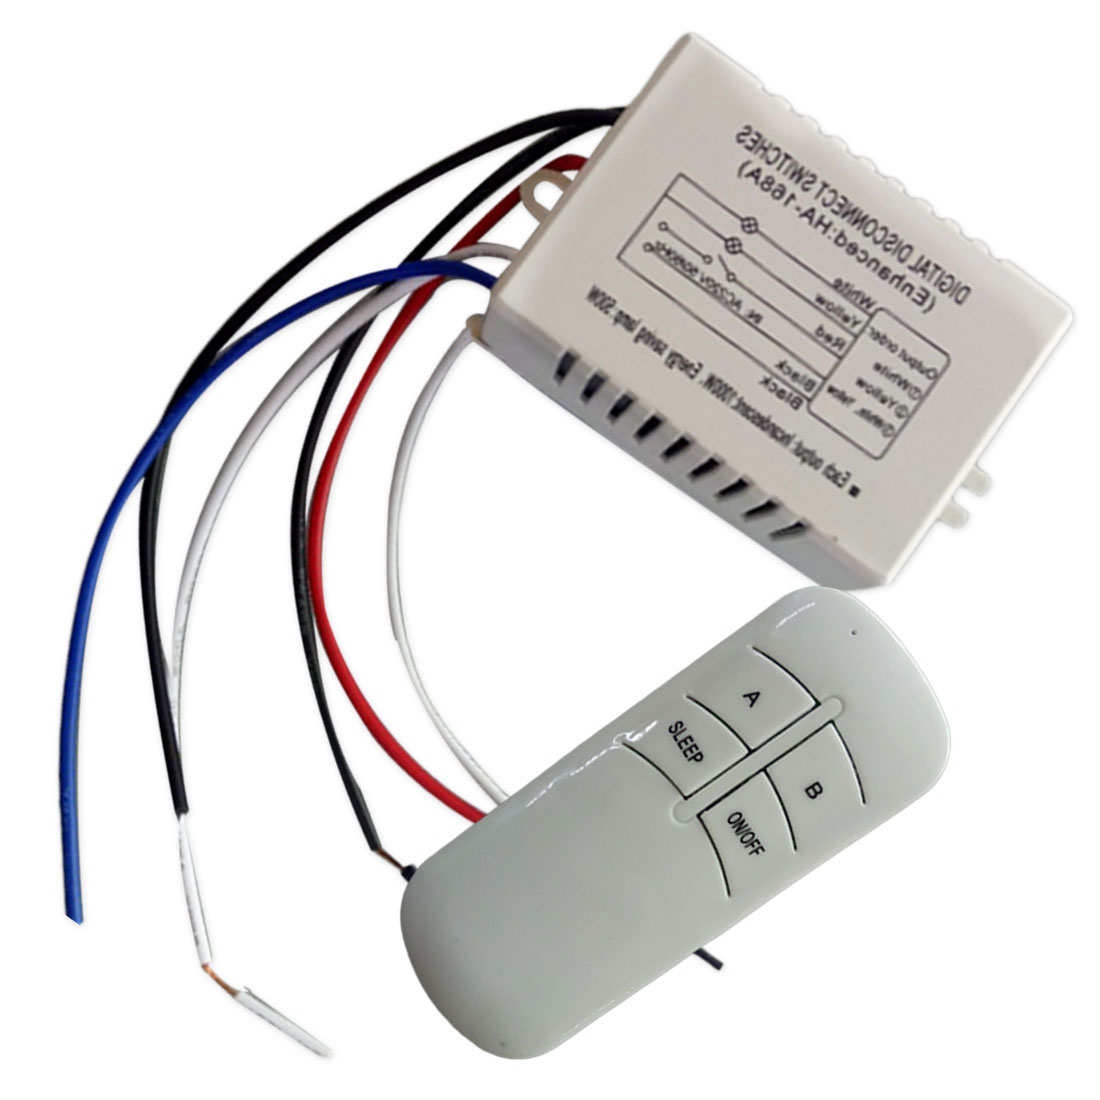 1pcs Wireless Remote Control Switch 2/3ways ON/OFF 220V Digital Distance Control Switch Receiver Transmitter for LED Lamp Light1pcs Wireless Remote Control Switch 2/3ways ON/OFF 220V Digital Distance Control Switch Receiver Transmitter for LED Lamp Light